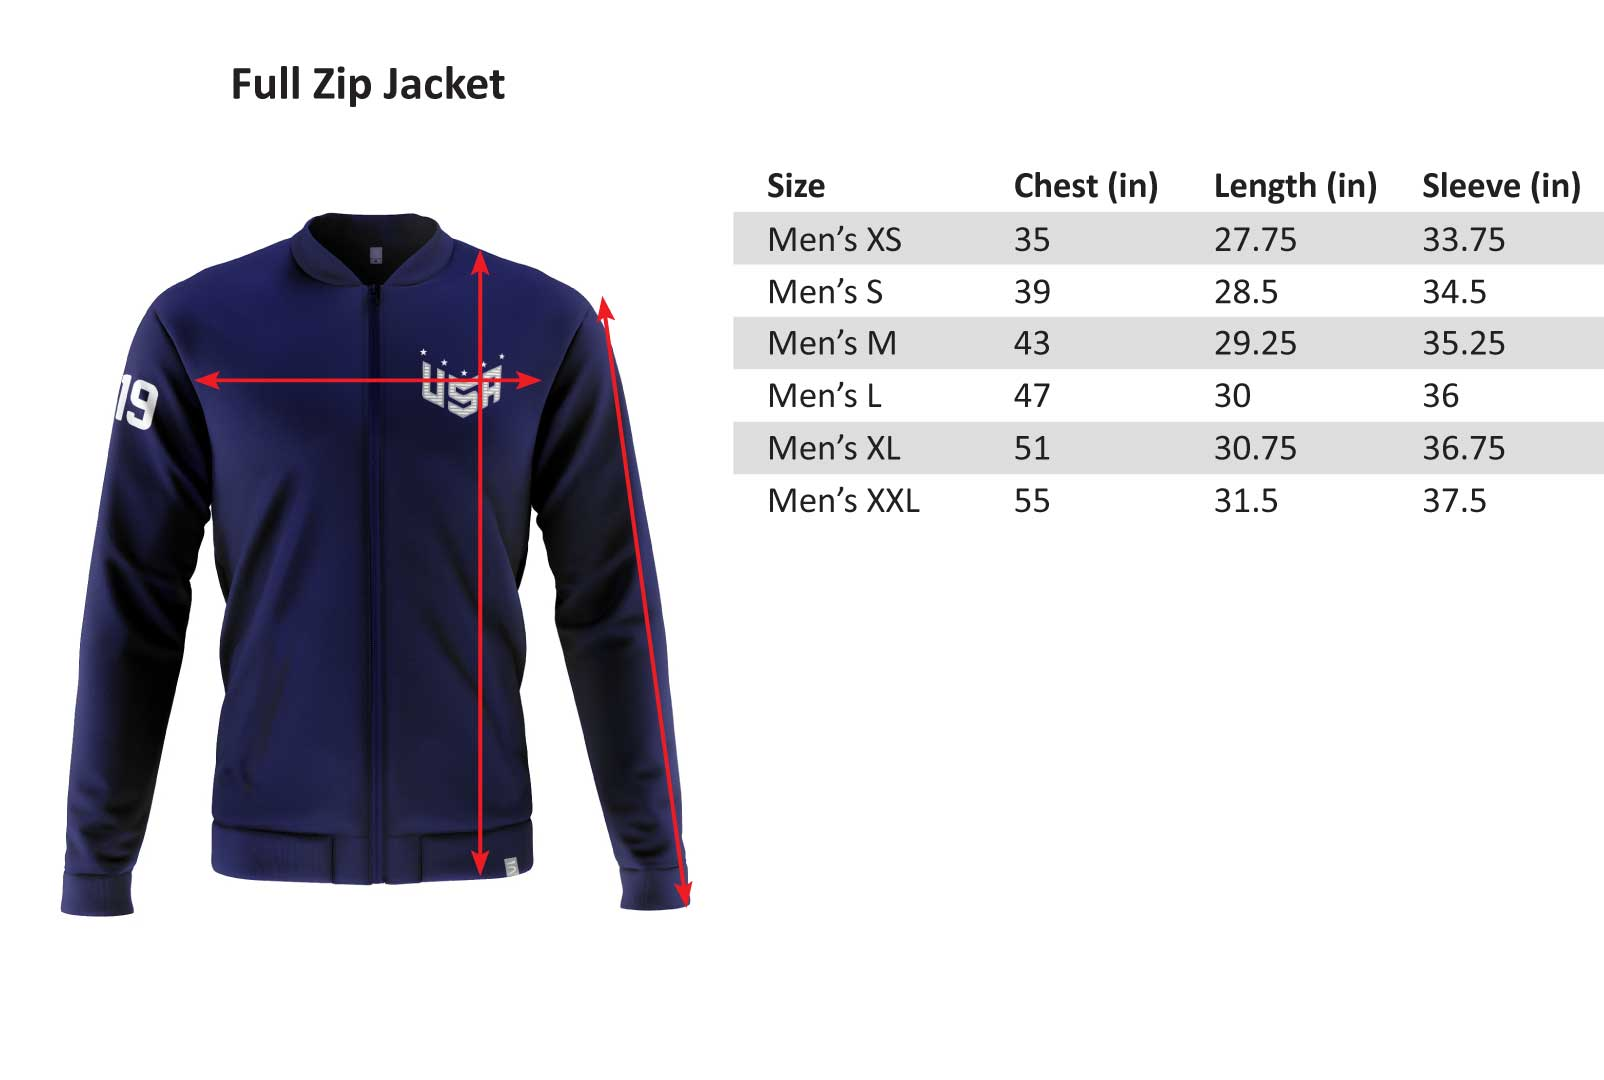 USNT Full Zip Jacket